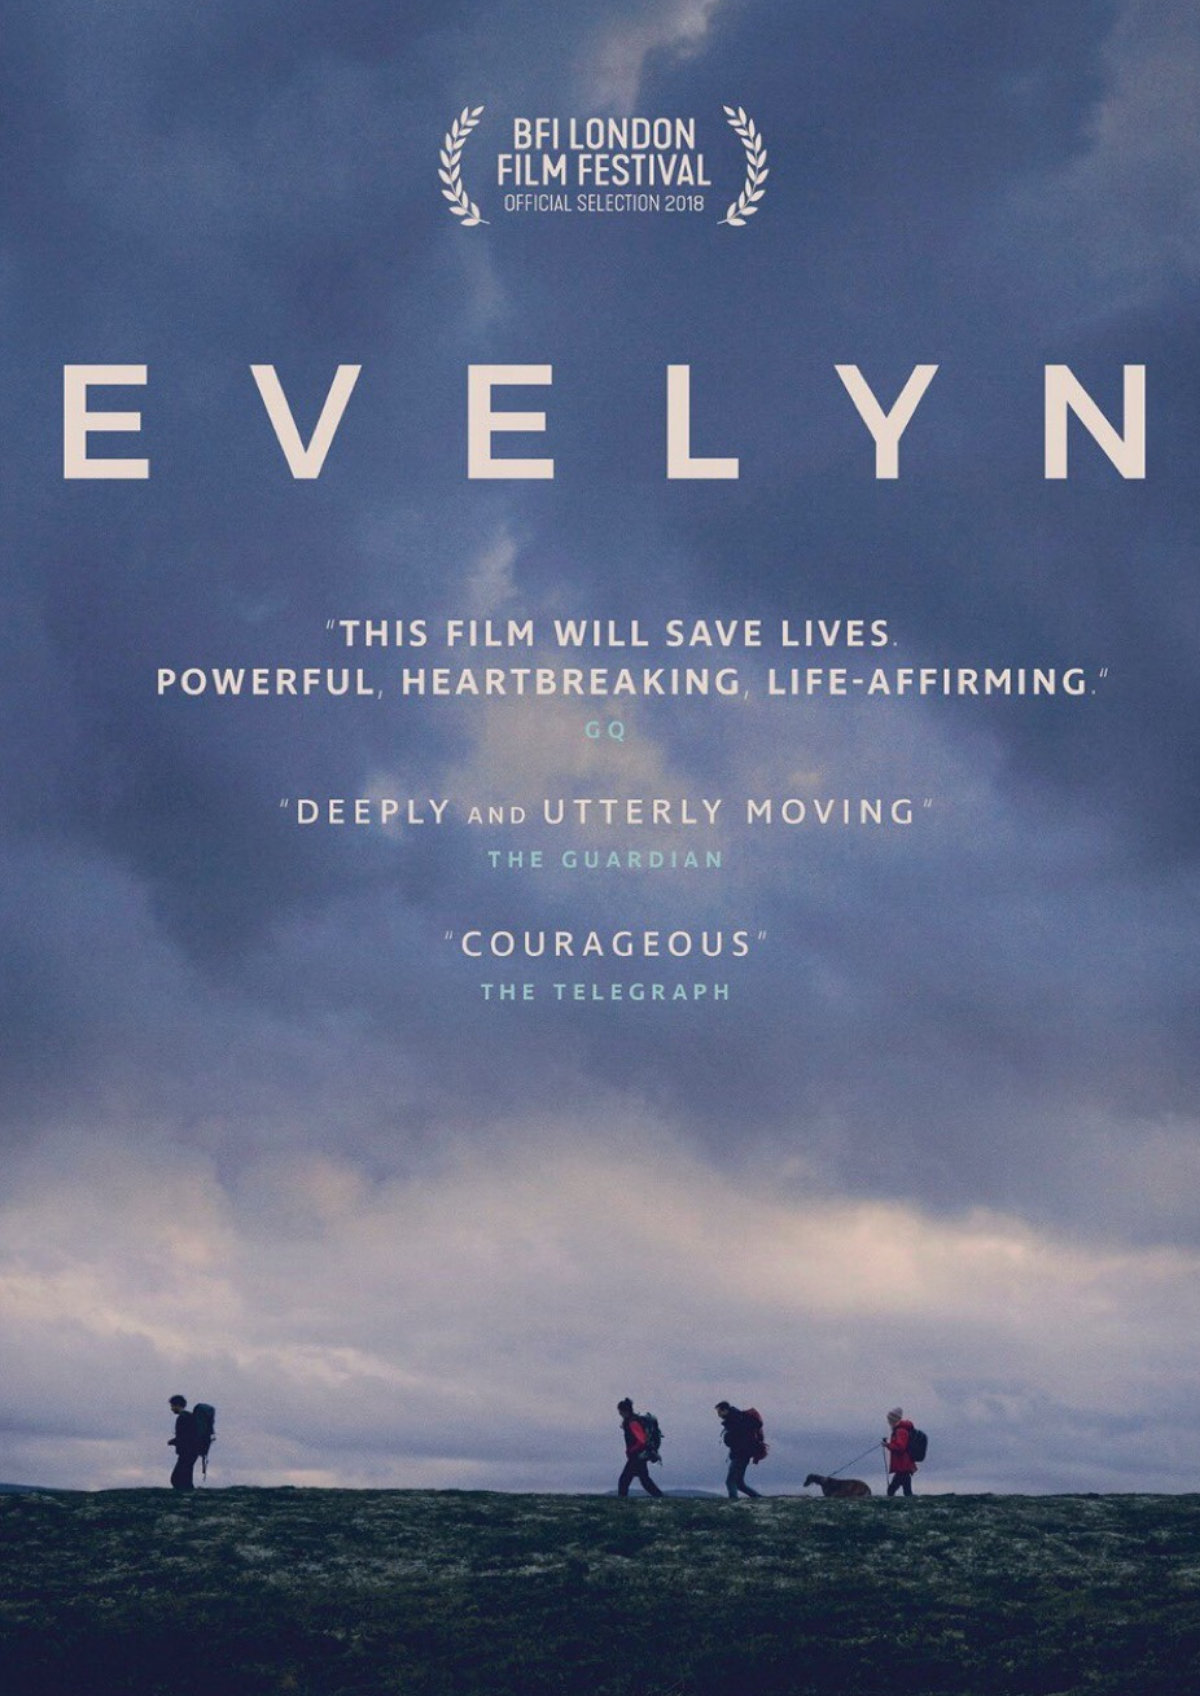 'Evelyn' movie poster